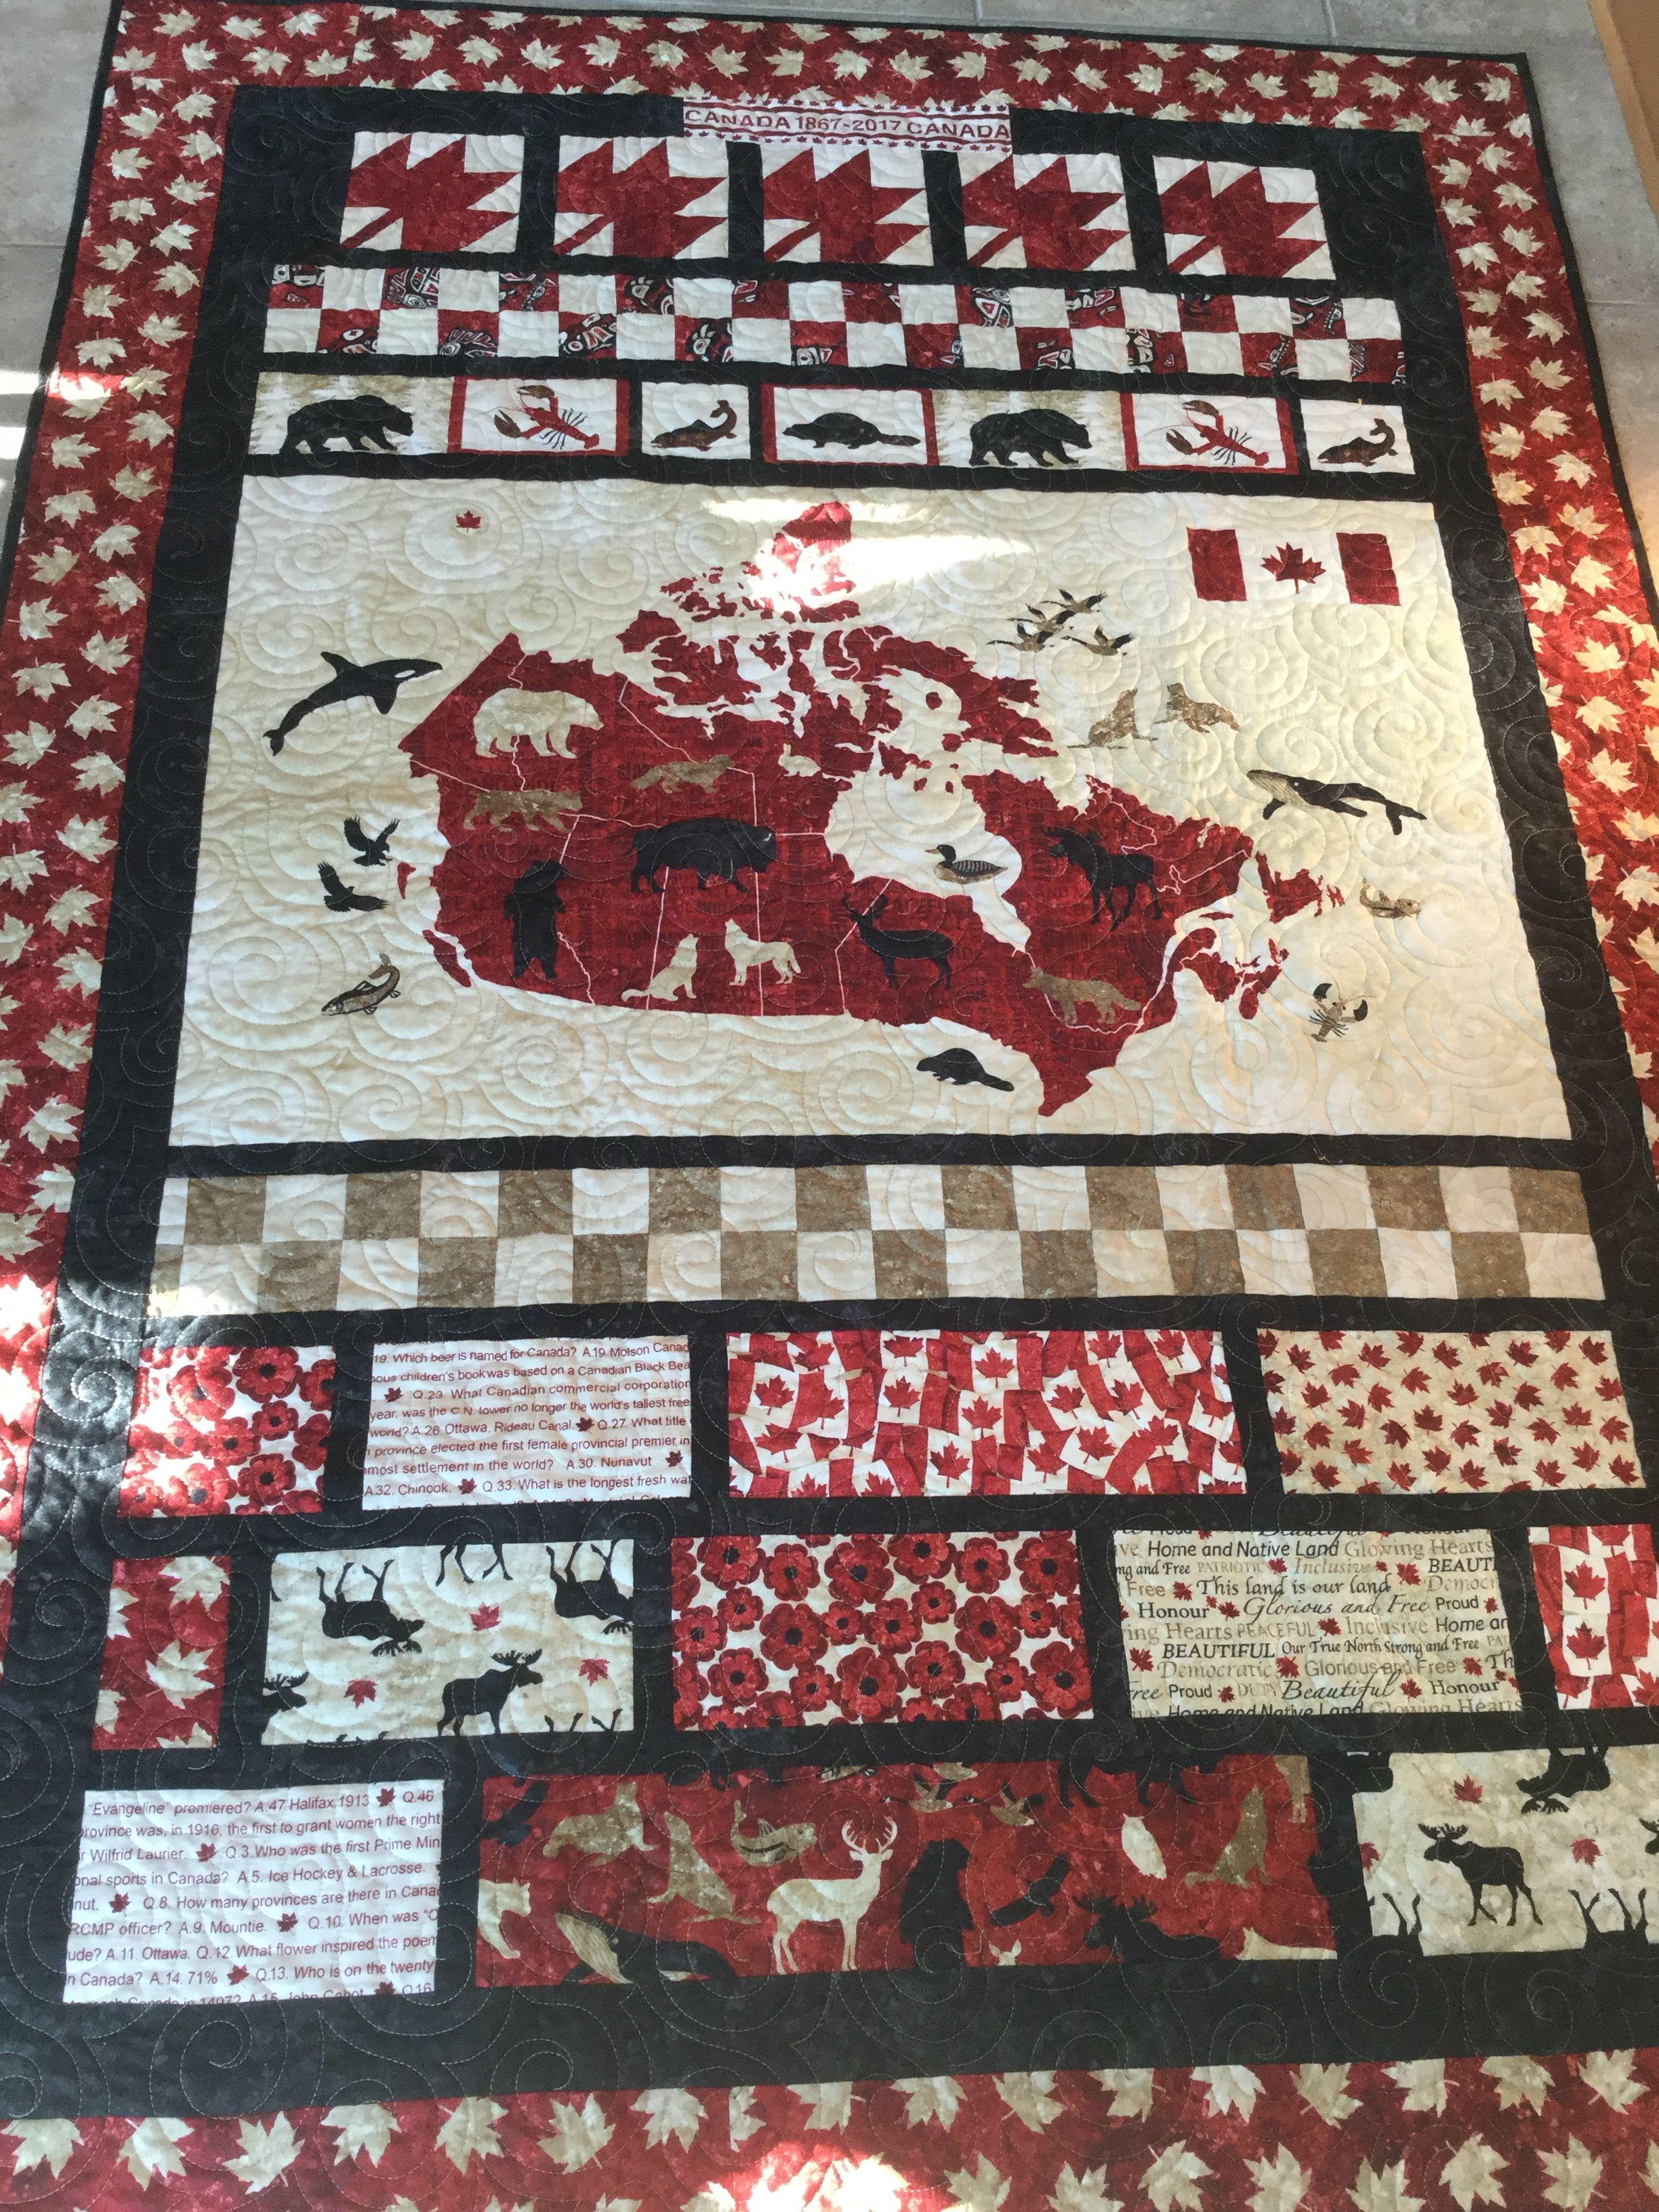 Canada 150 Quilt that I made for the National Defence